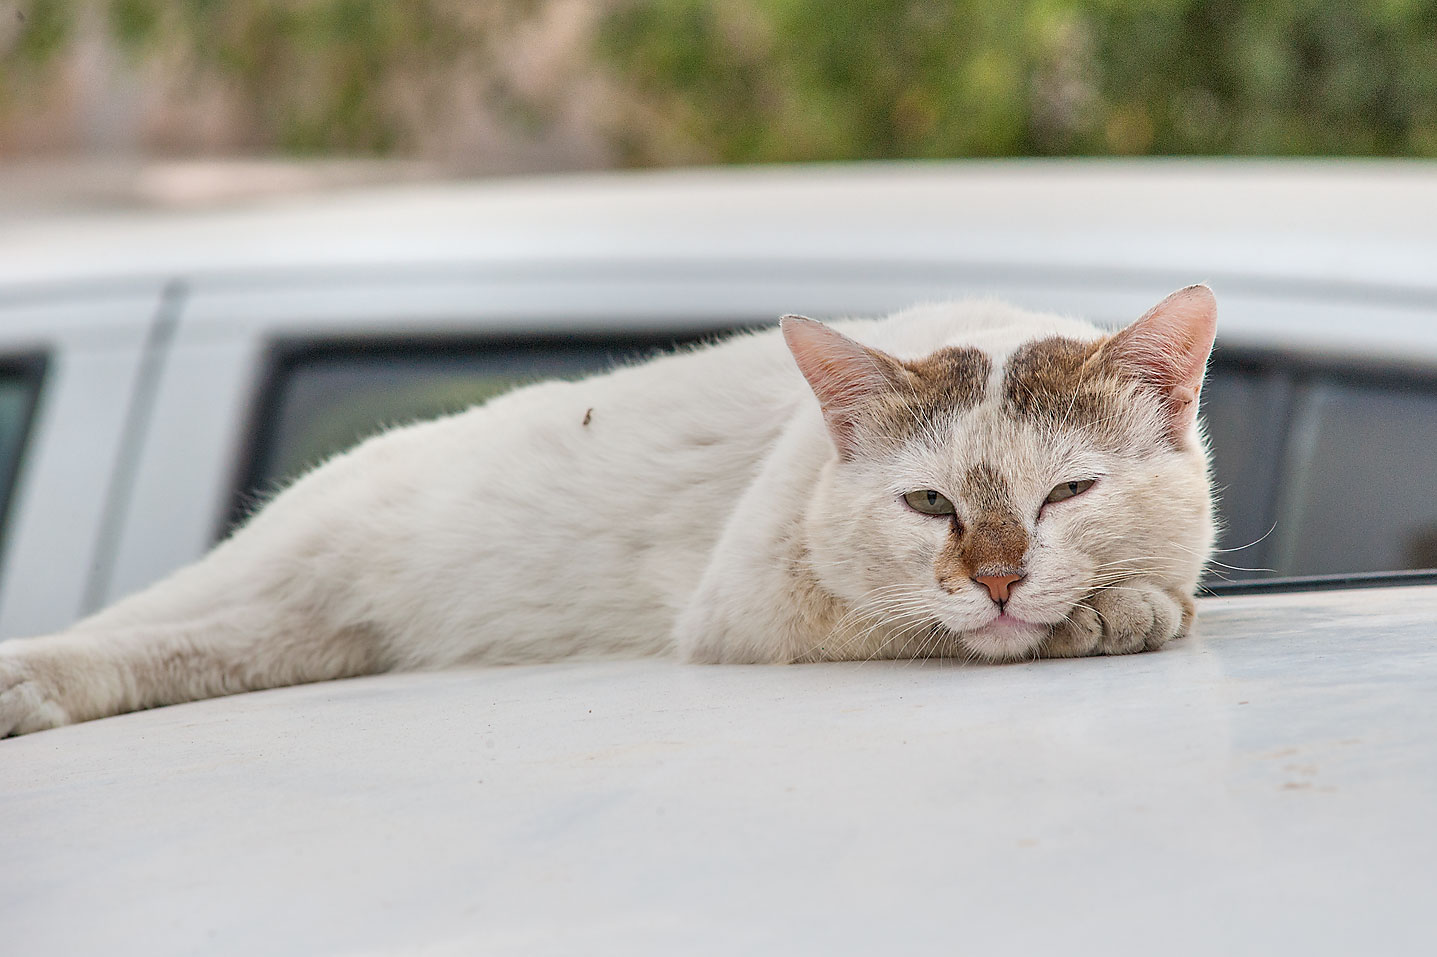 Whitish cat resting on a car on Umm Wishad St. in Musheirib area. Doha, Qatar